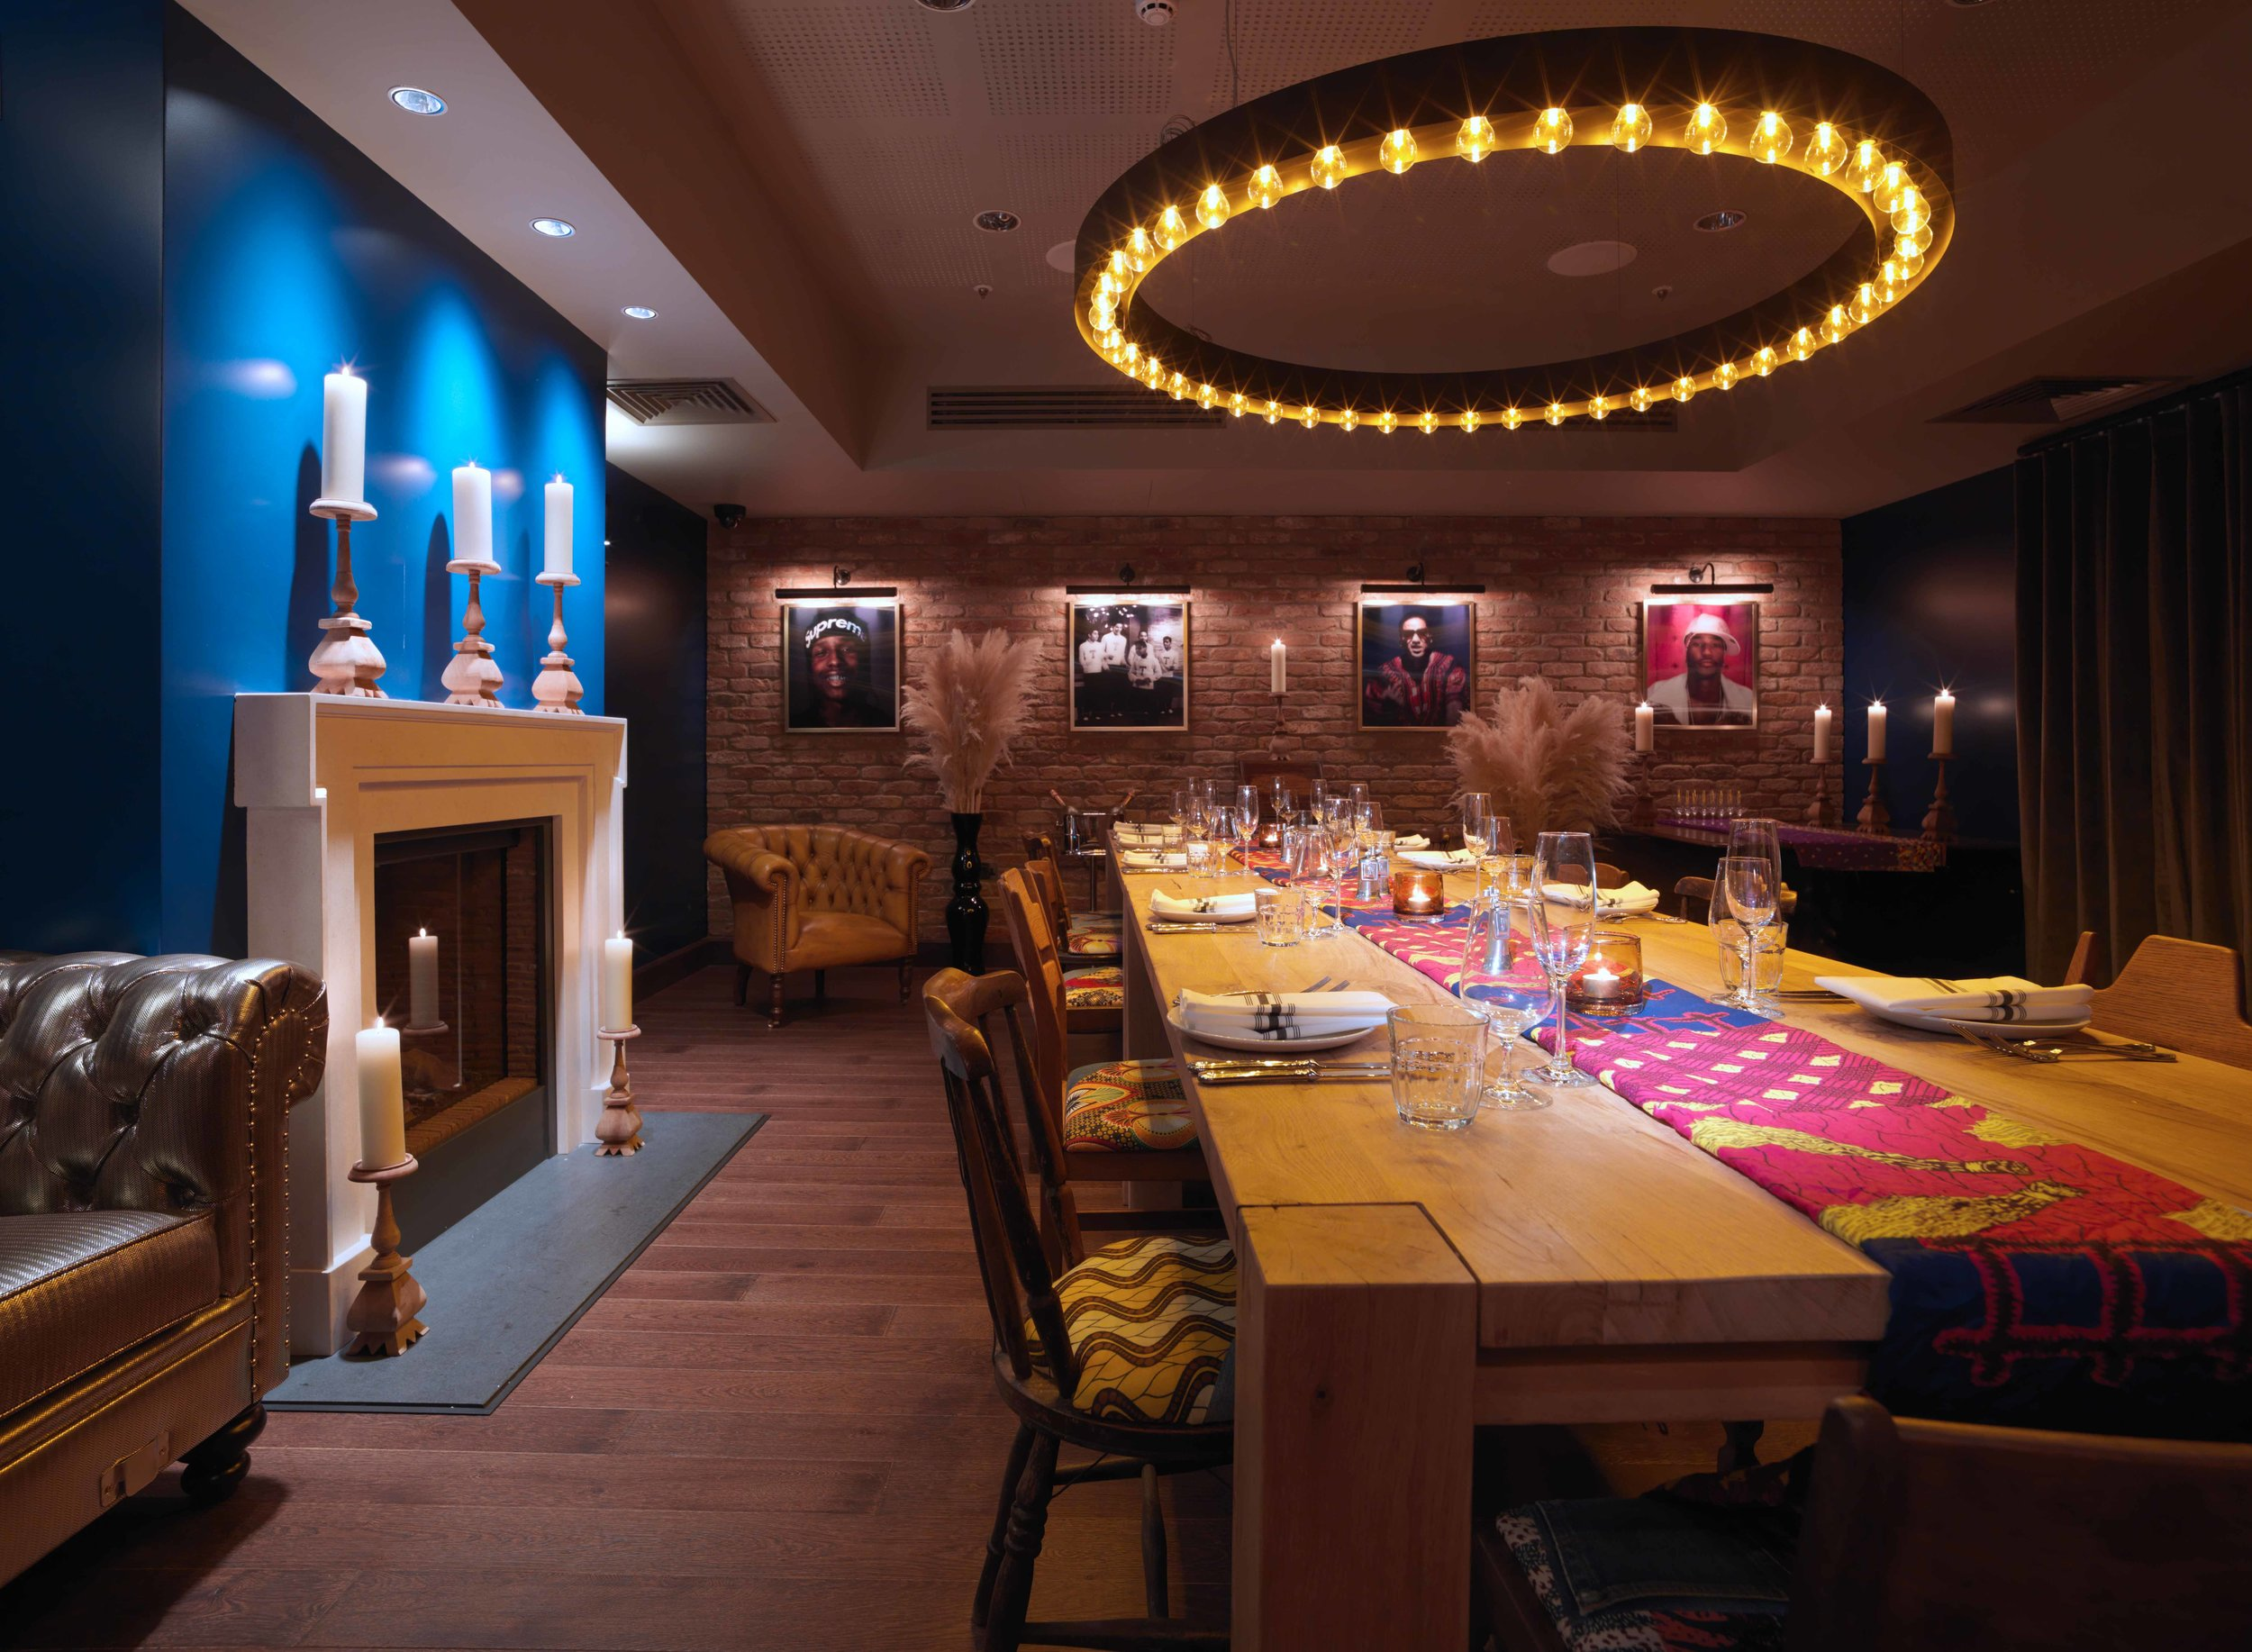 RR private dining room_A.Houston5.jpg